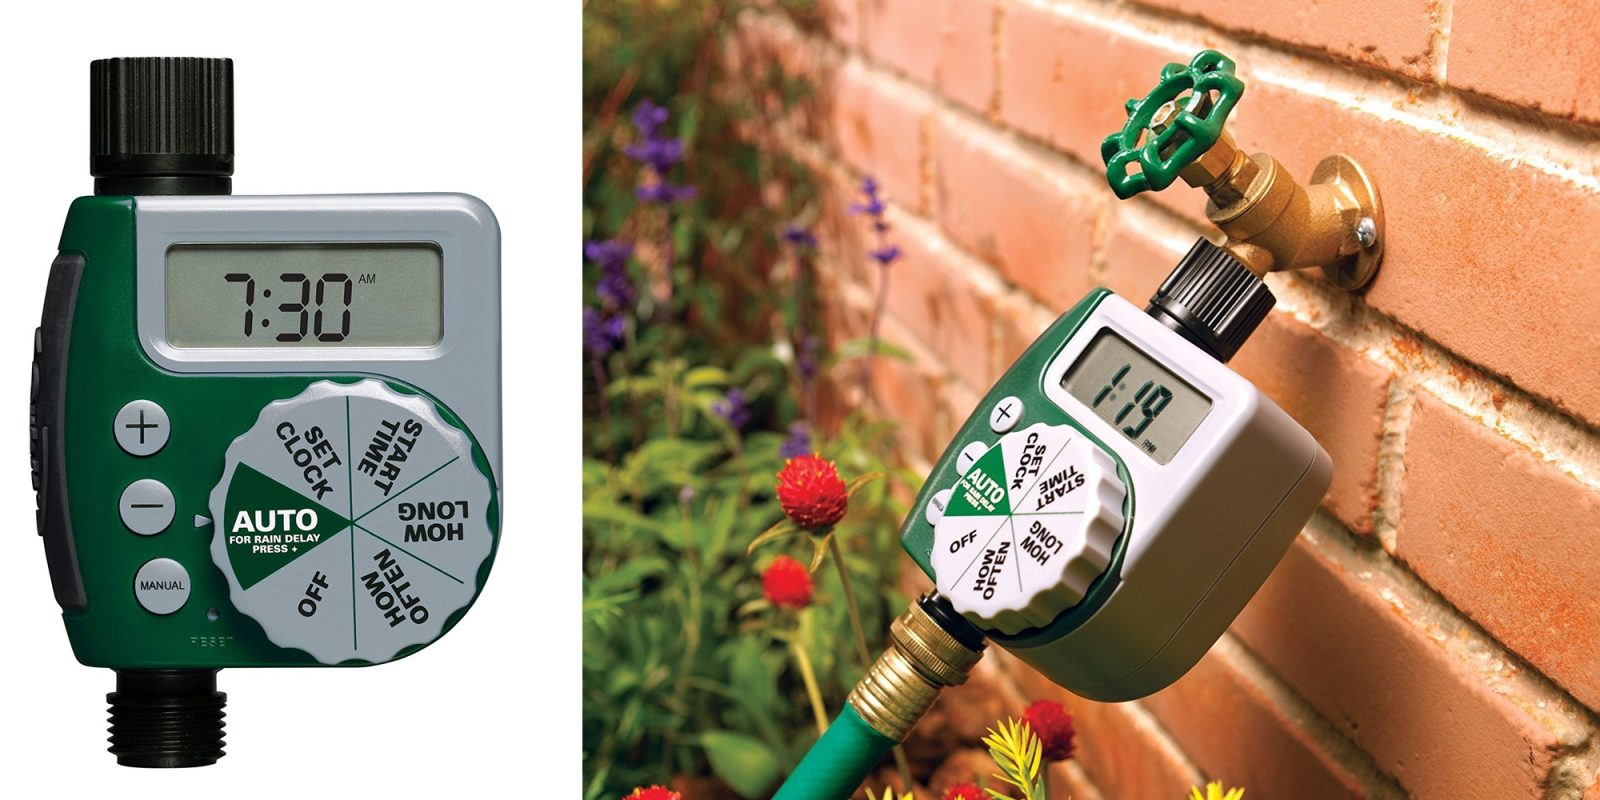 Water your lawn easily with this programmable hose faucet timer for $20